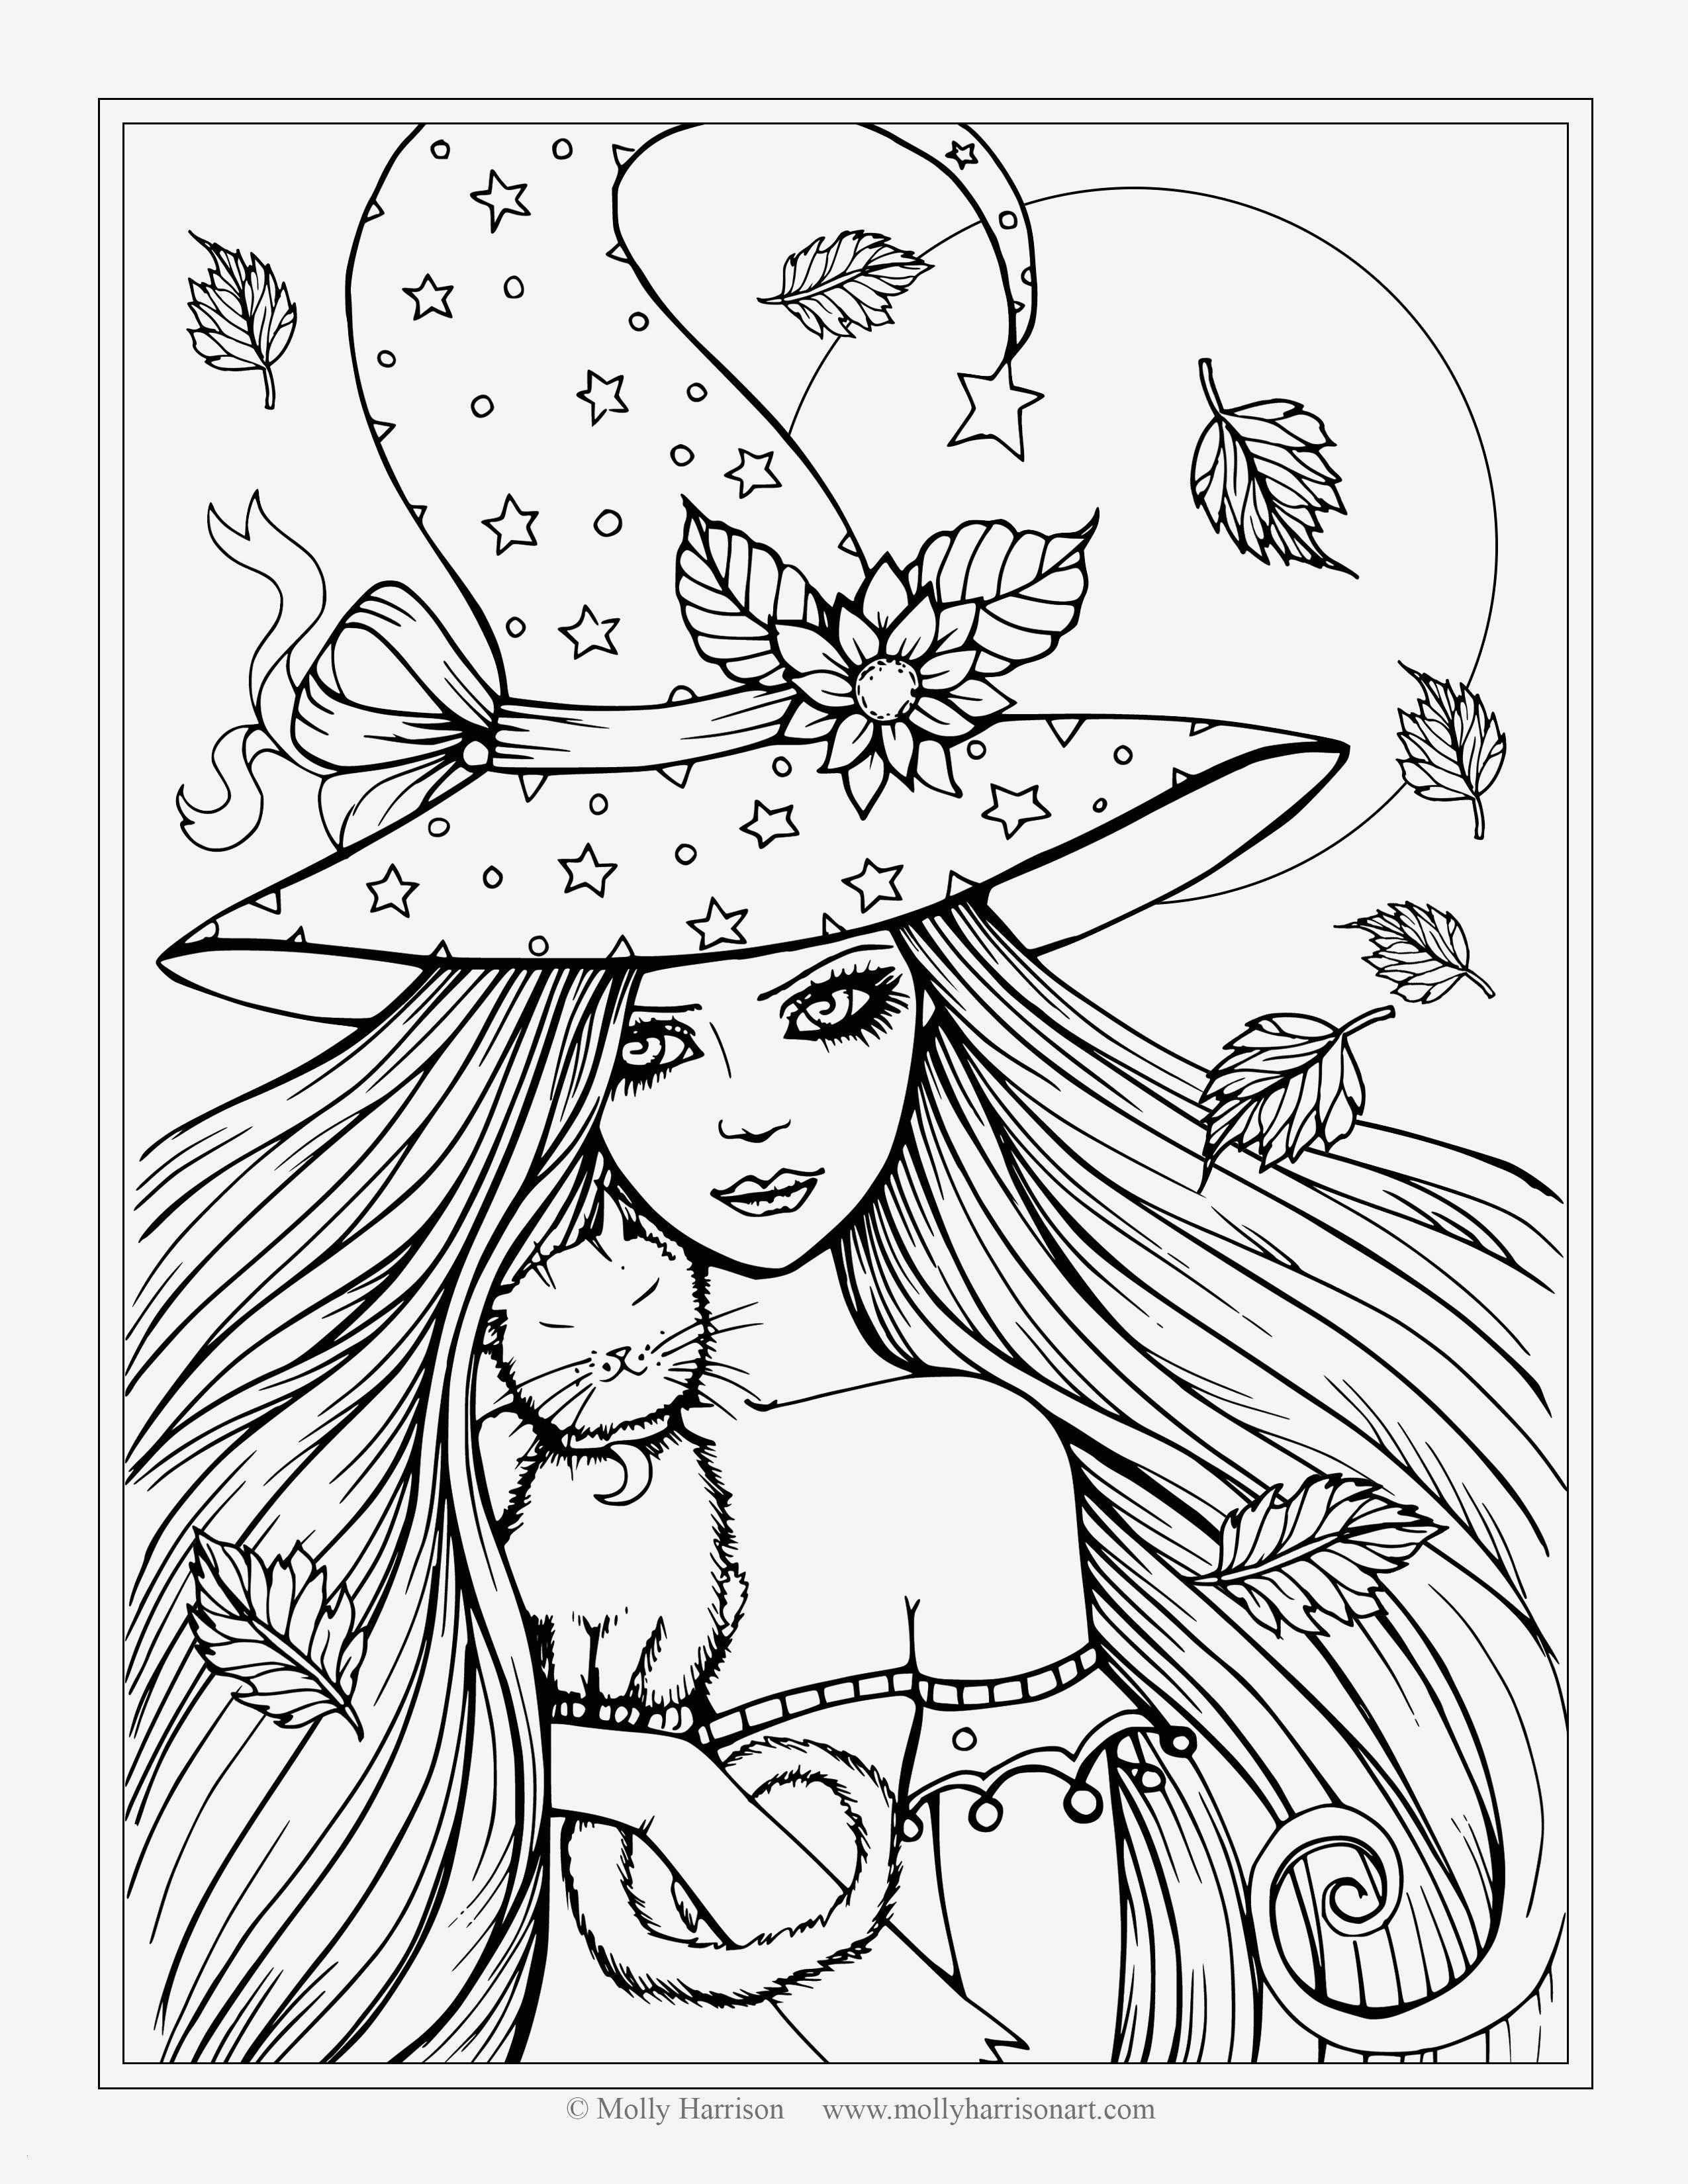 easy halloween coloring pages Collection-Free Halloween Coloring Pages the First Ever Custom Great Easy Halloween Coloring Pages Letramac 3-g